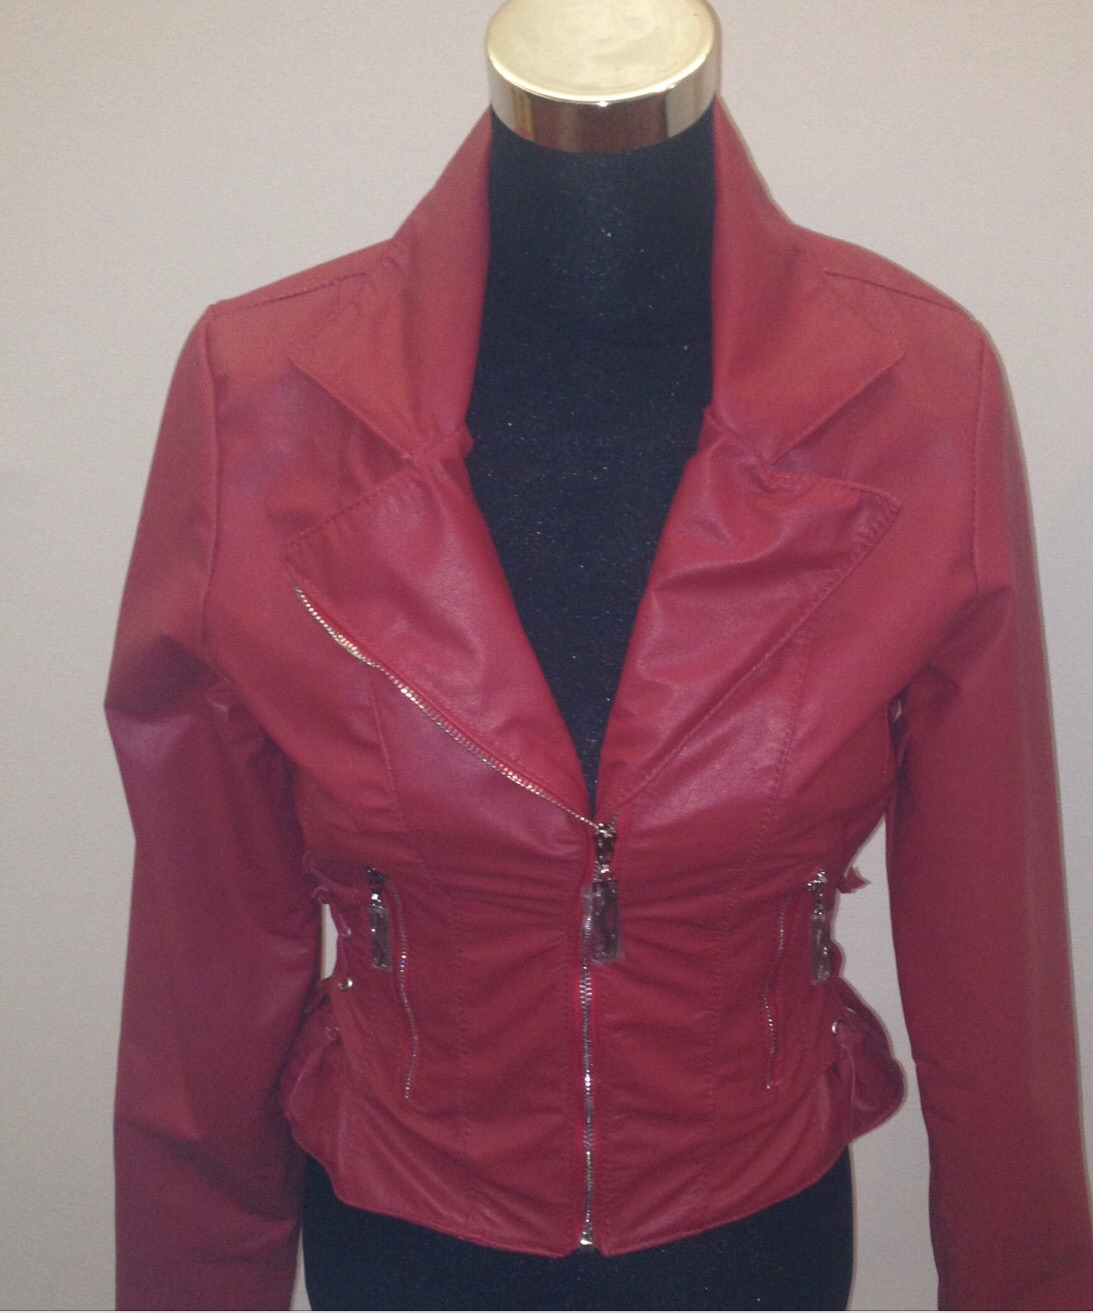 Genuine leather jackets made to order